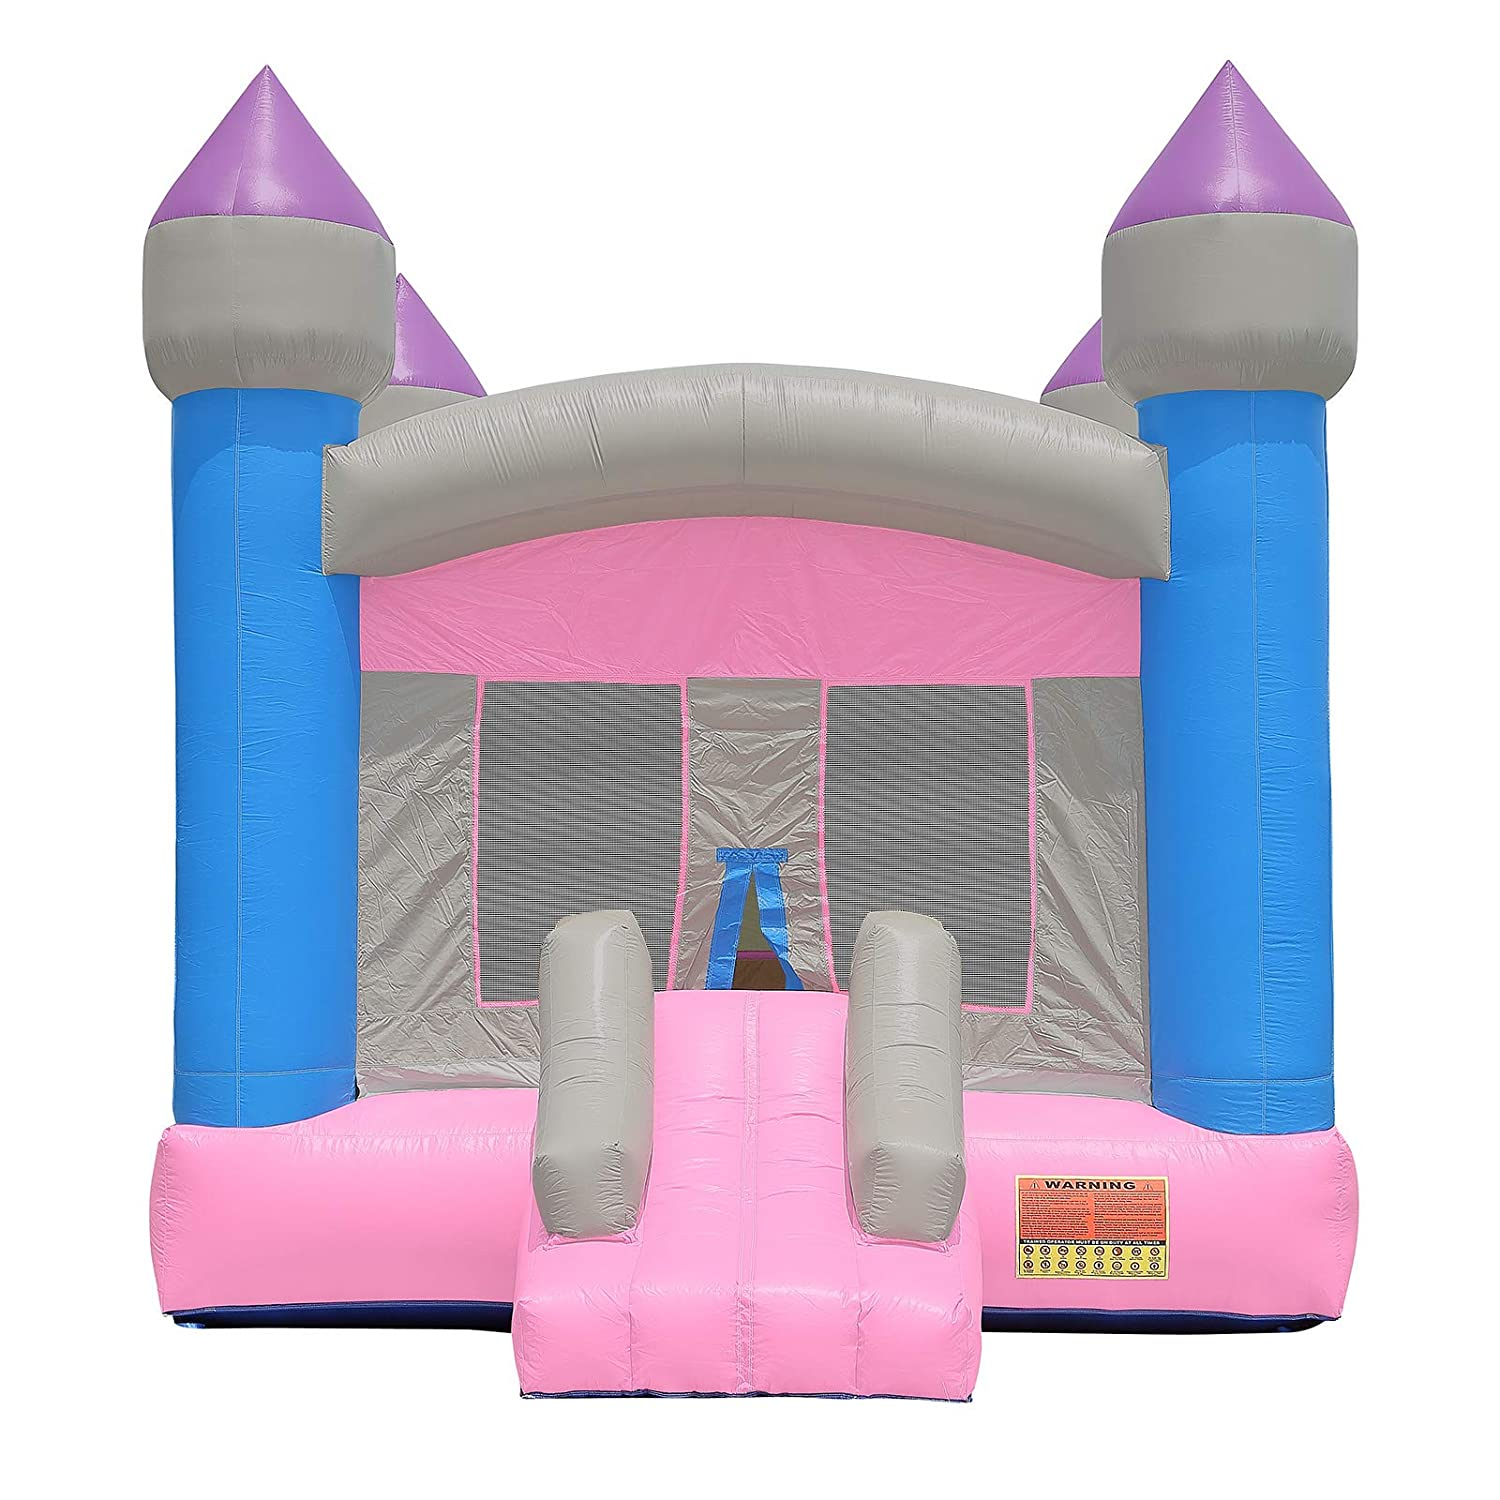 Amazon.com: HQ Bounce Casa 100% PVC. Princesa Castillo de ...